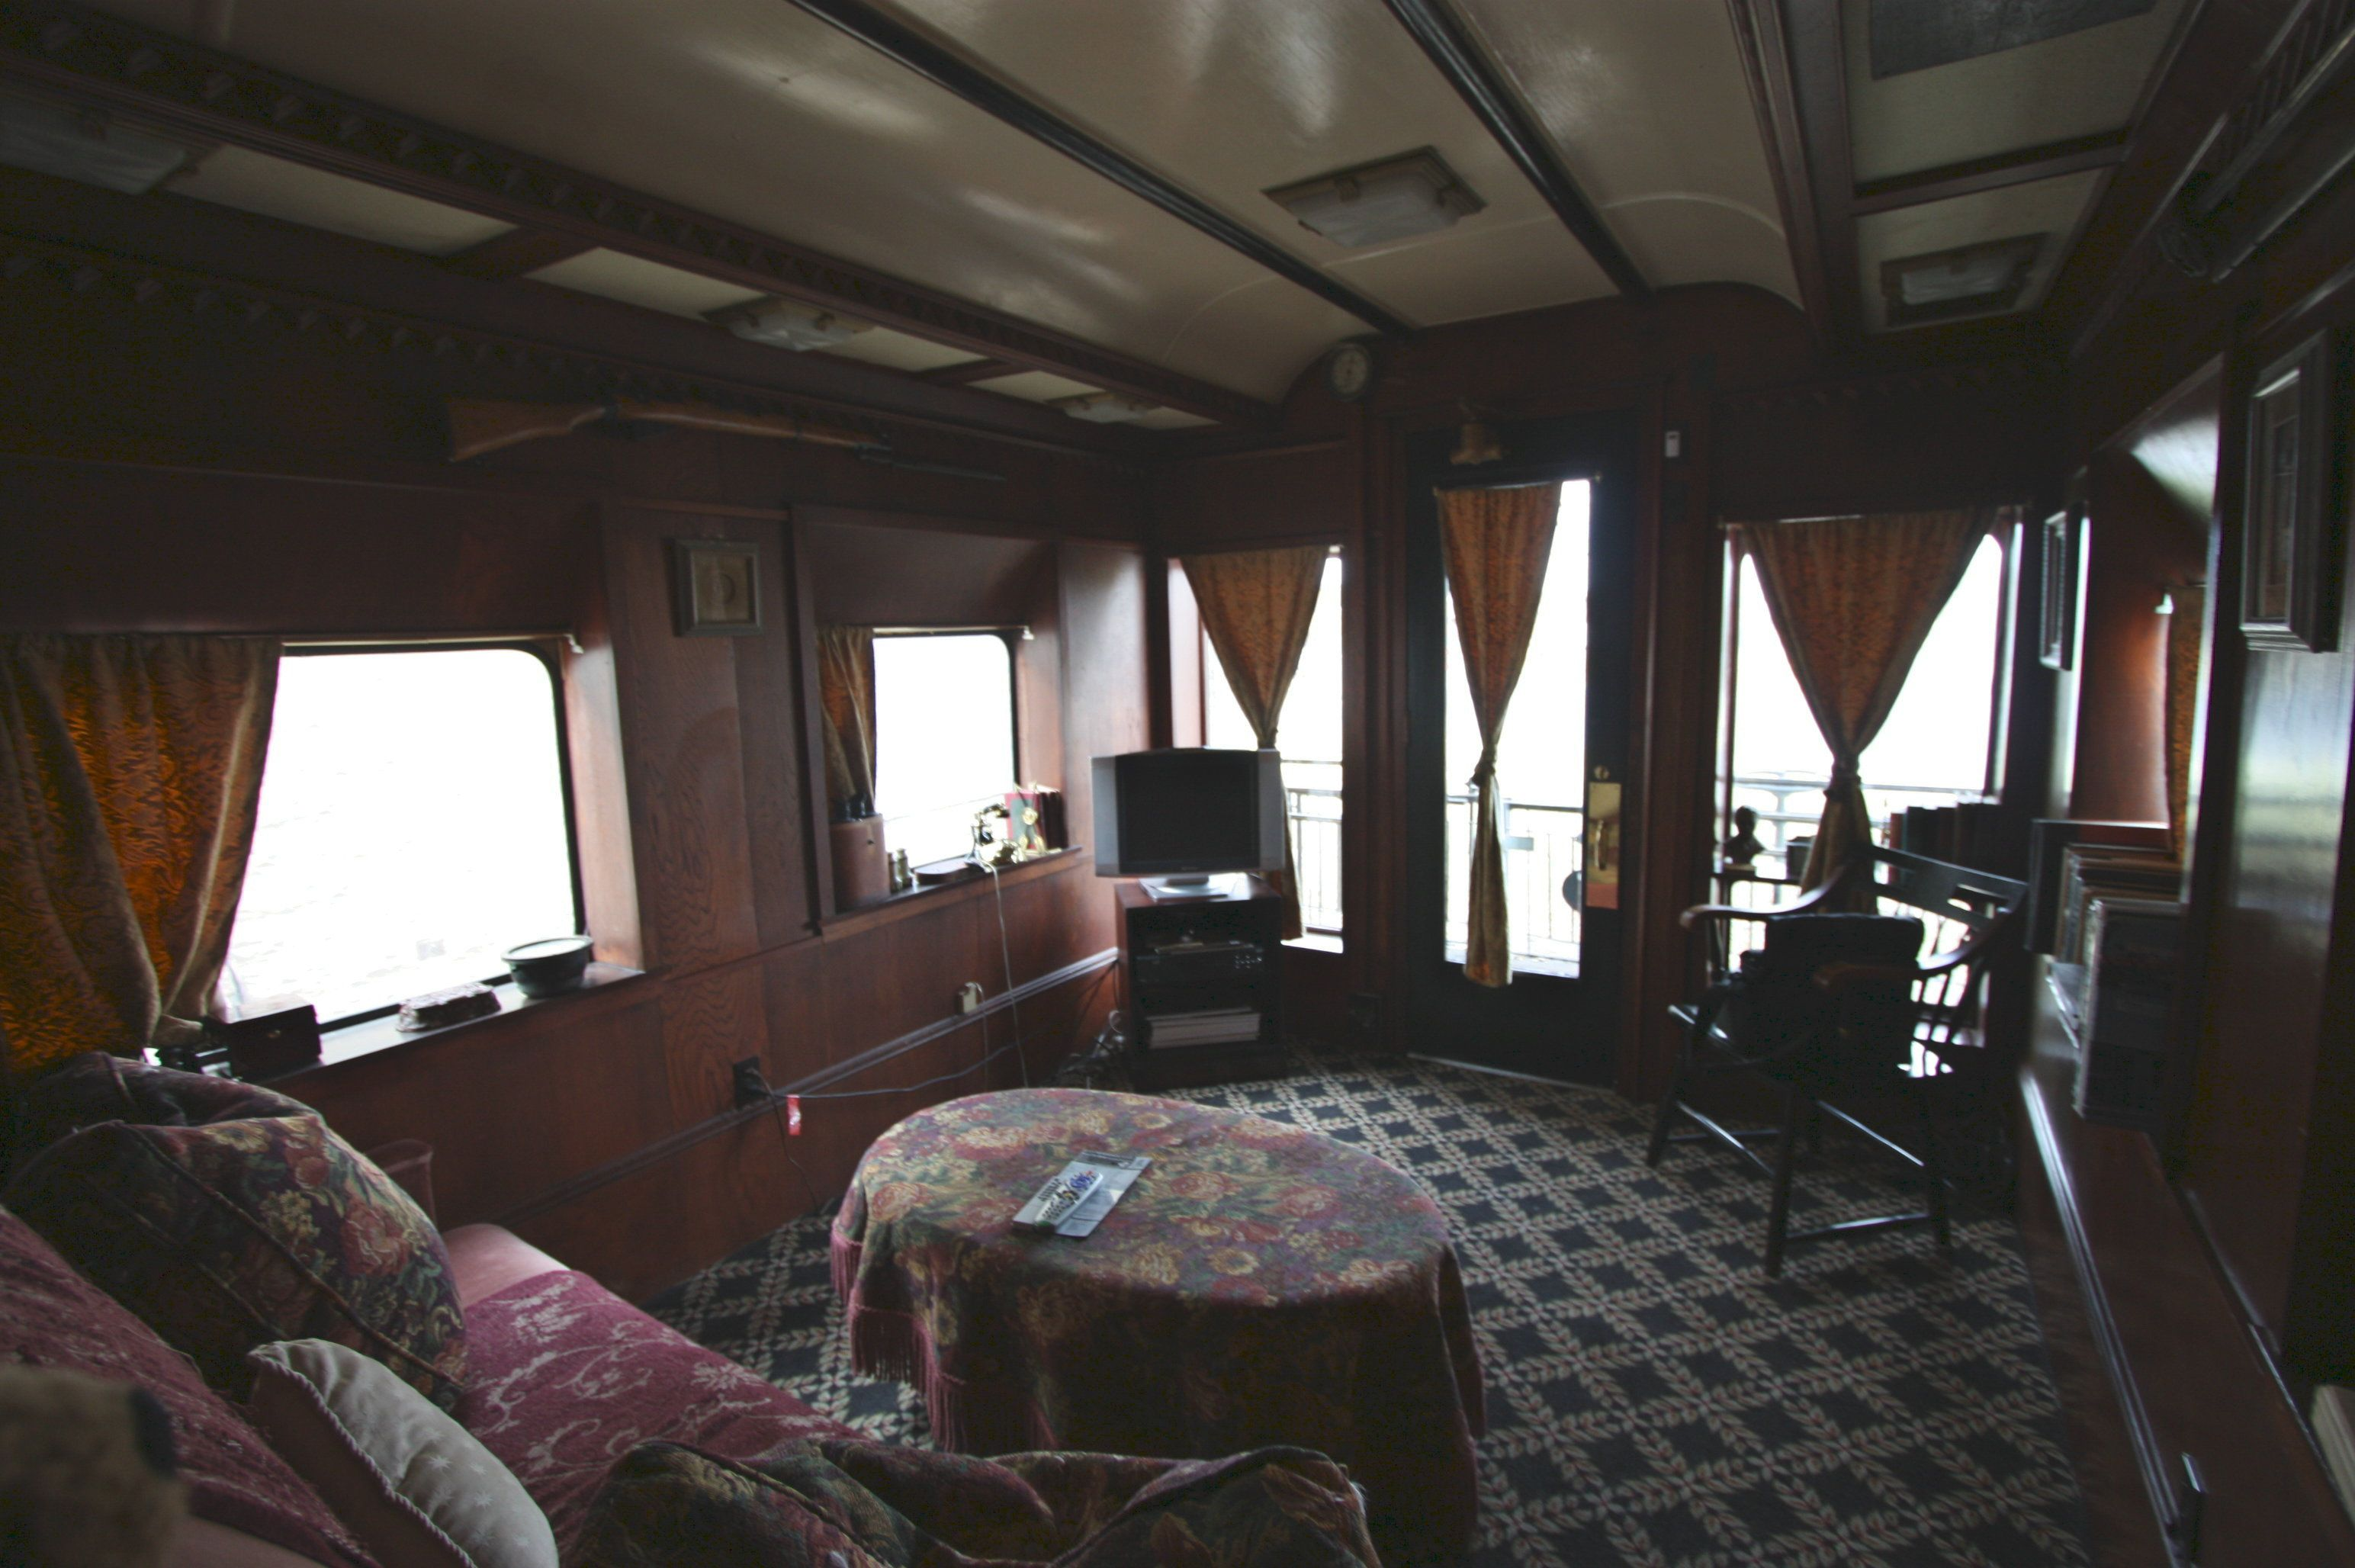 Cool Train Car B&B Pullman, Bed and breakfast, Car bed